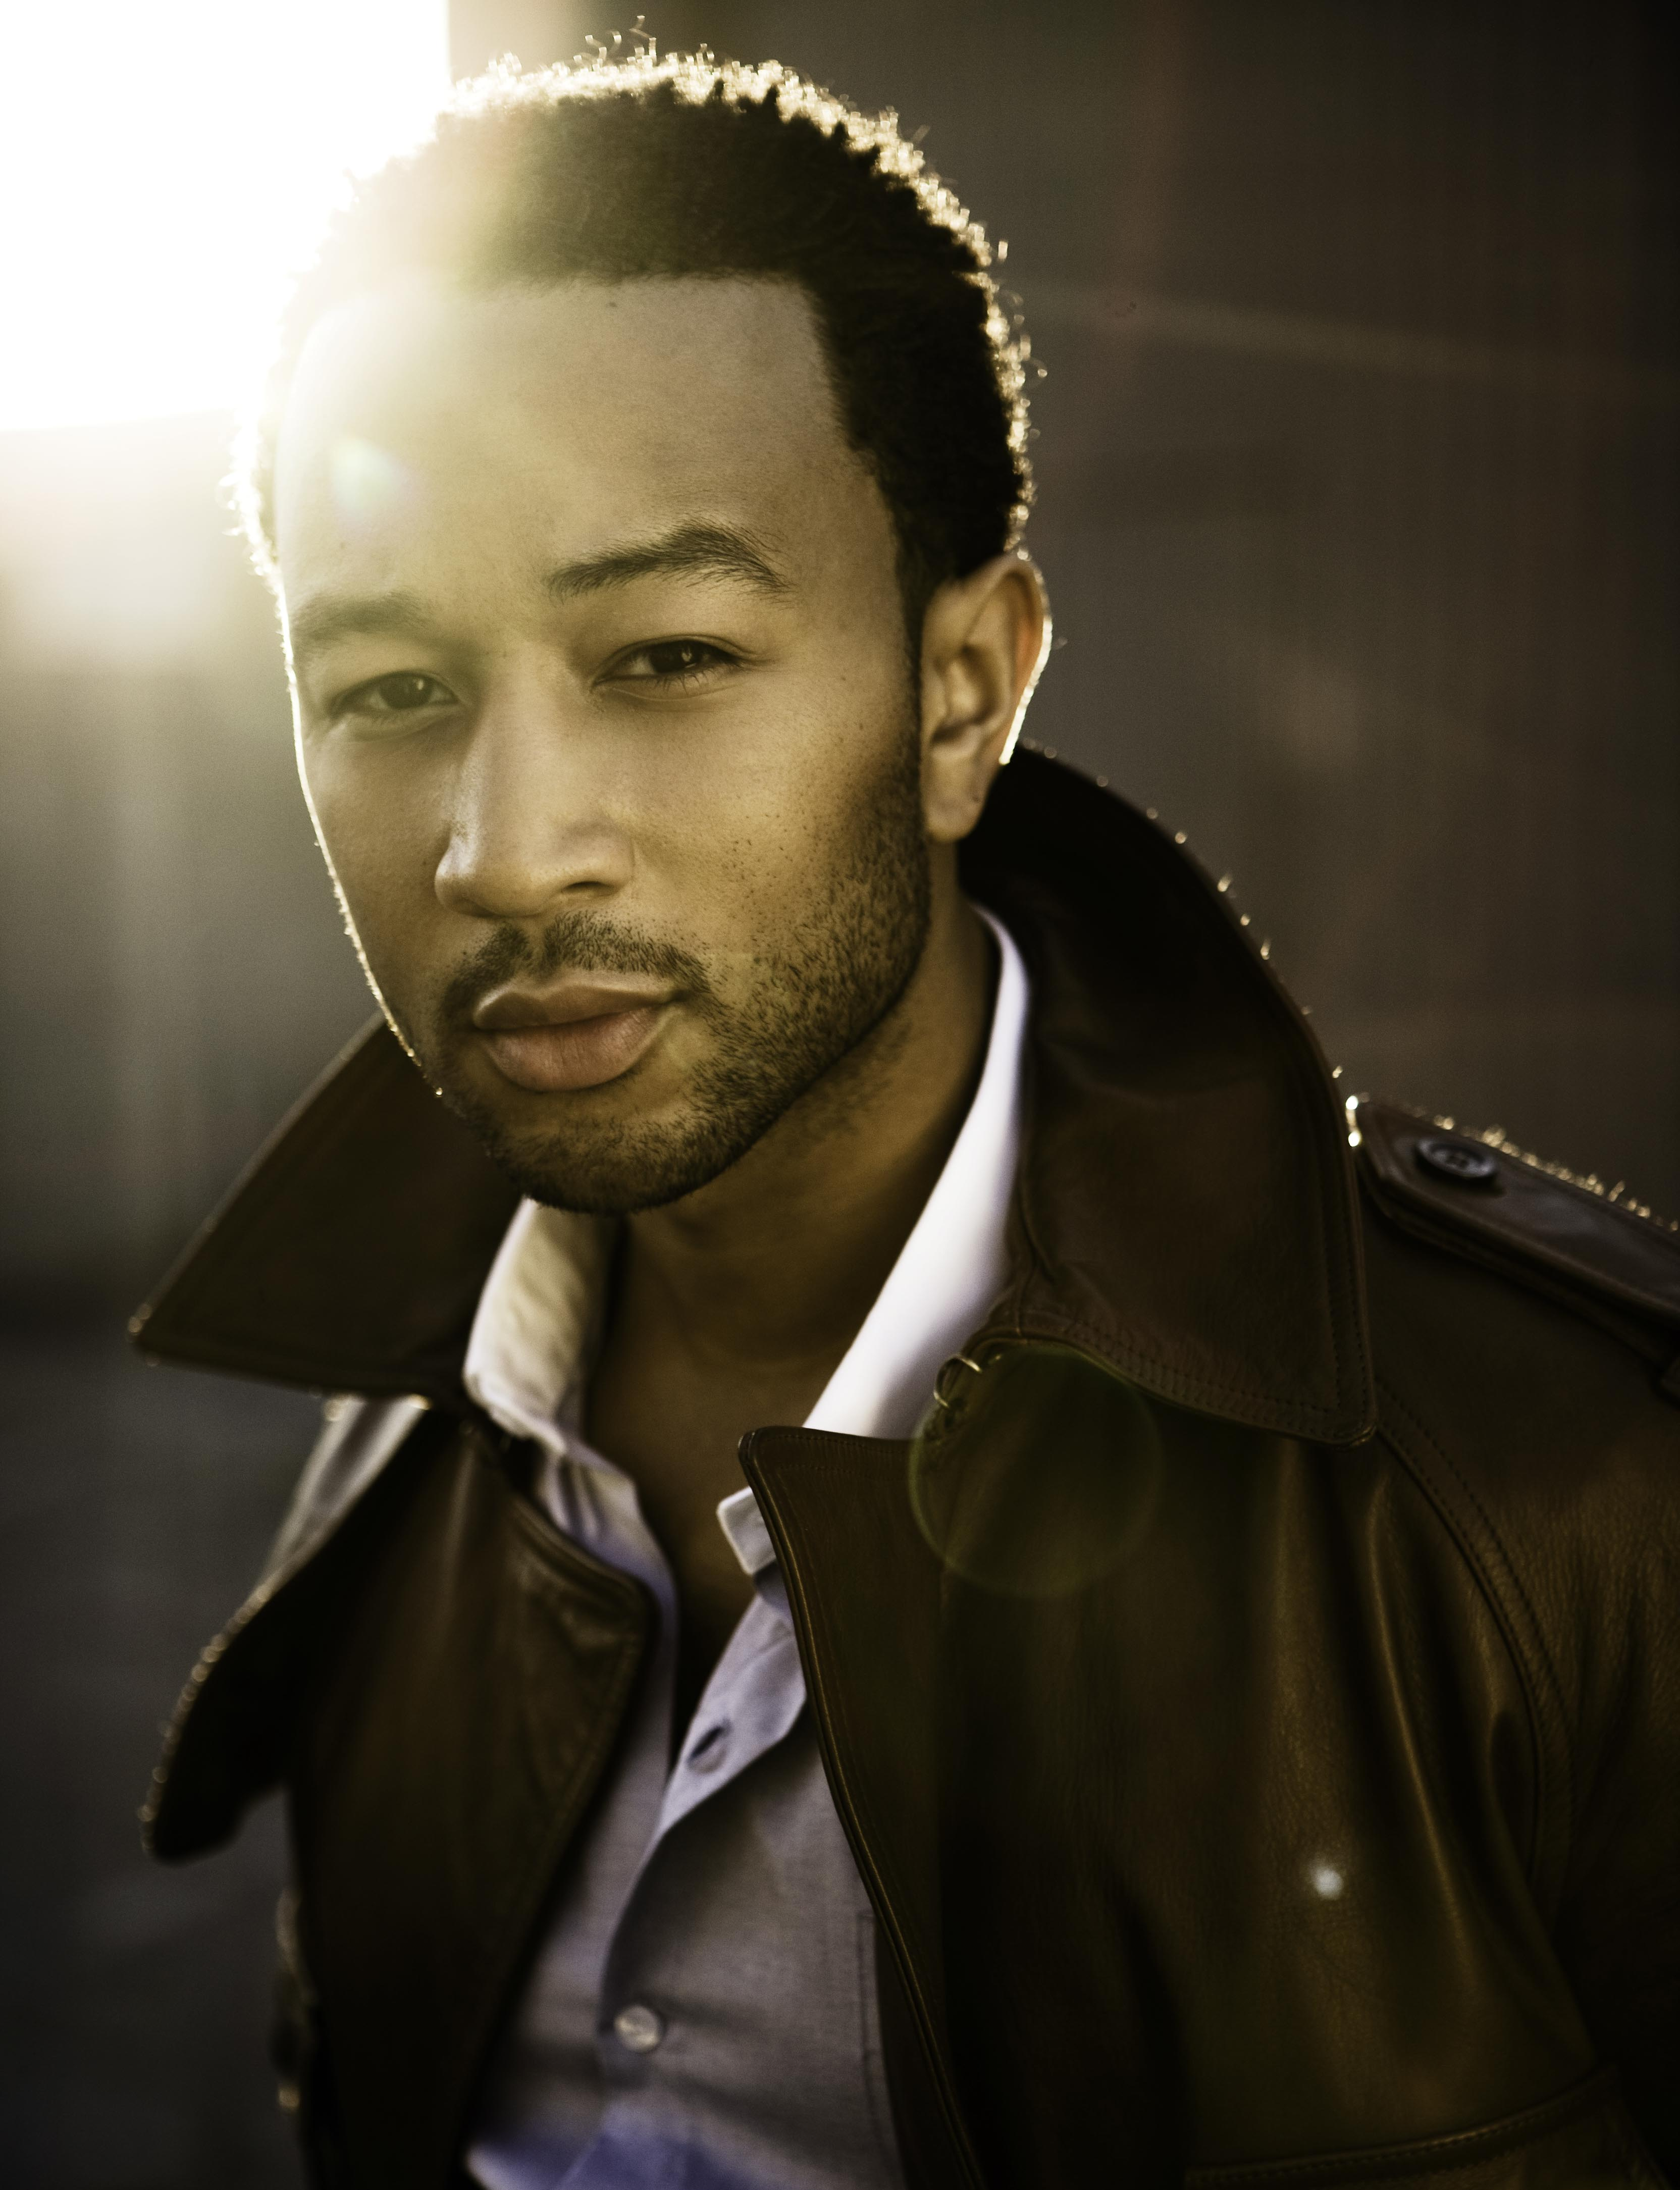 John Legend's Headshot